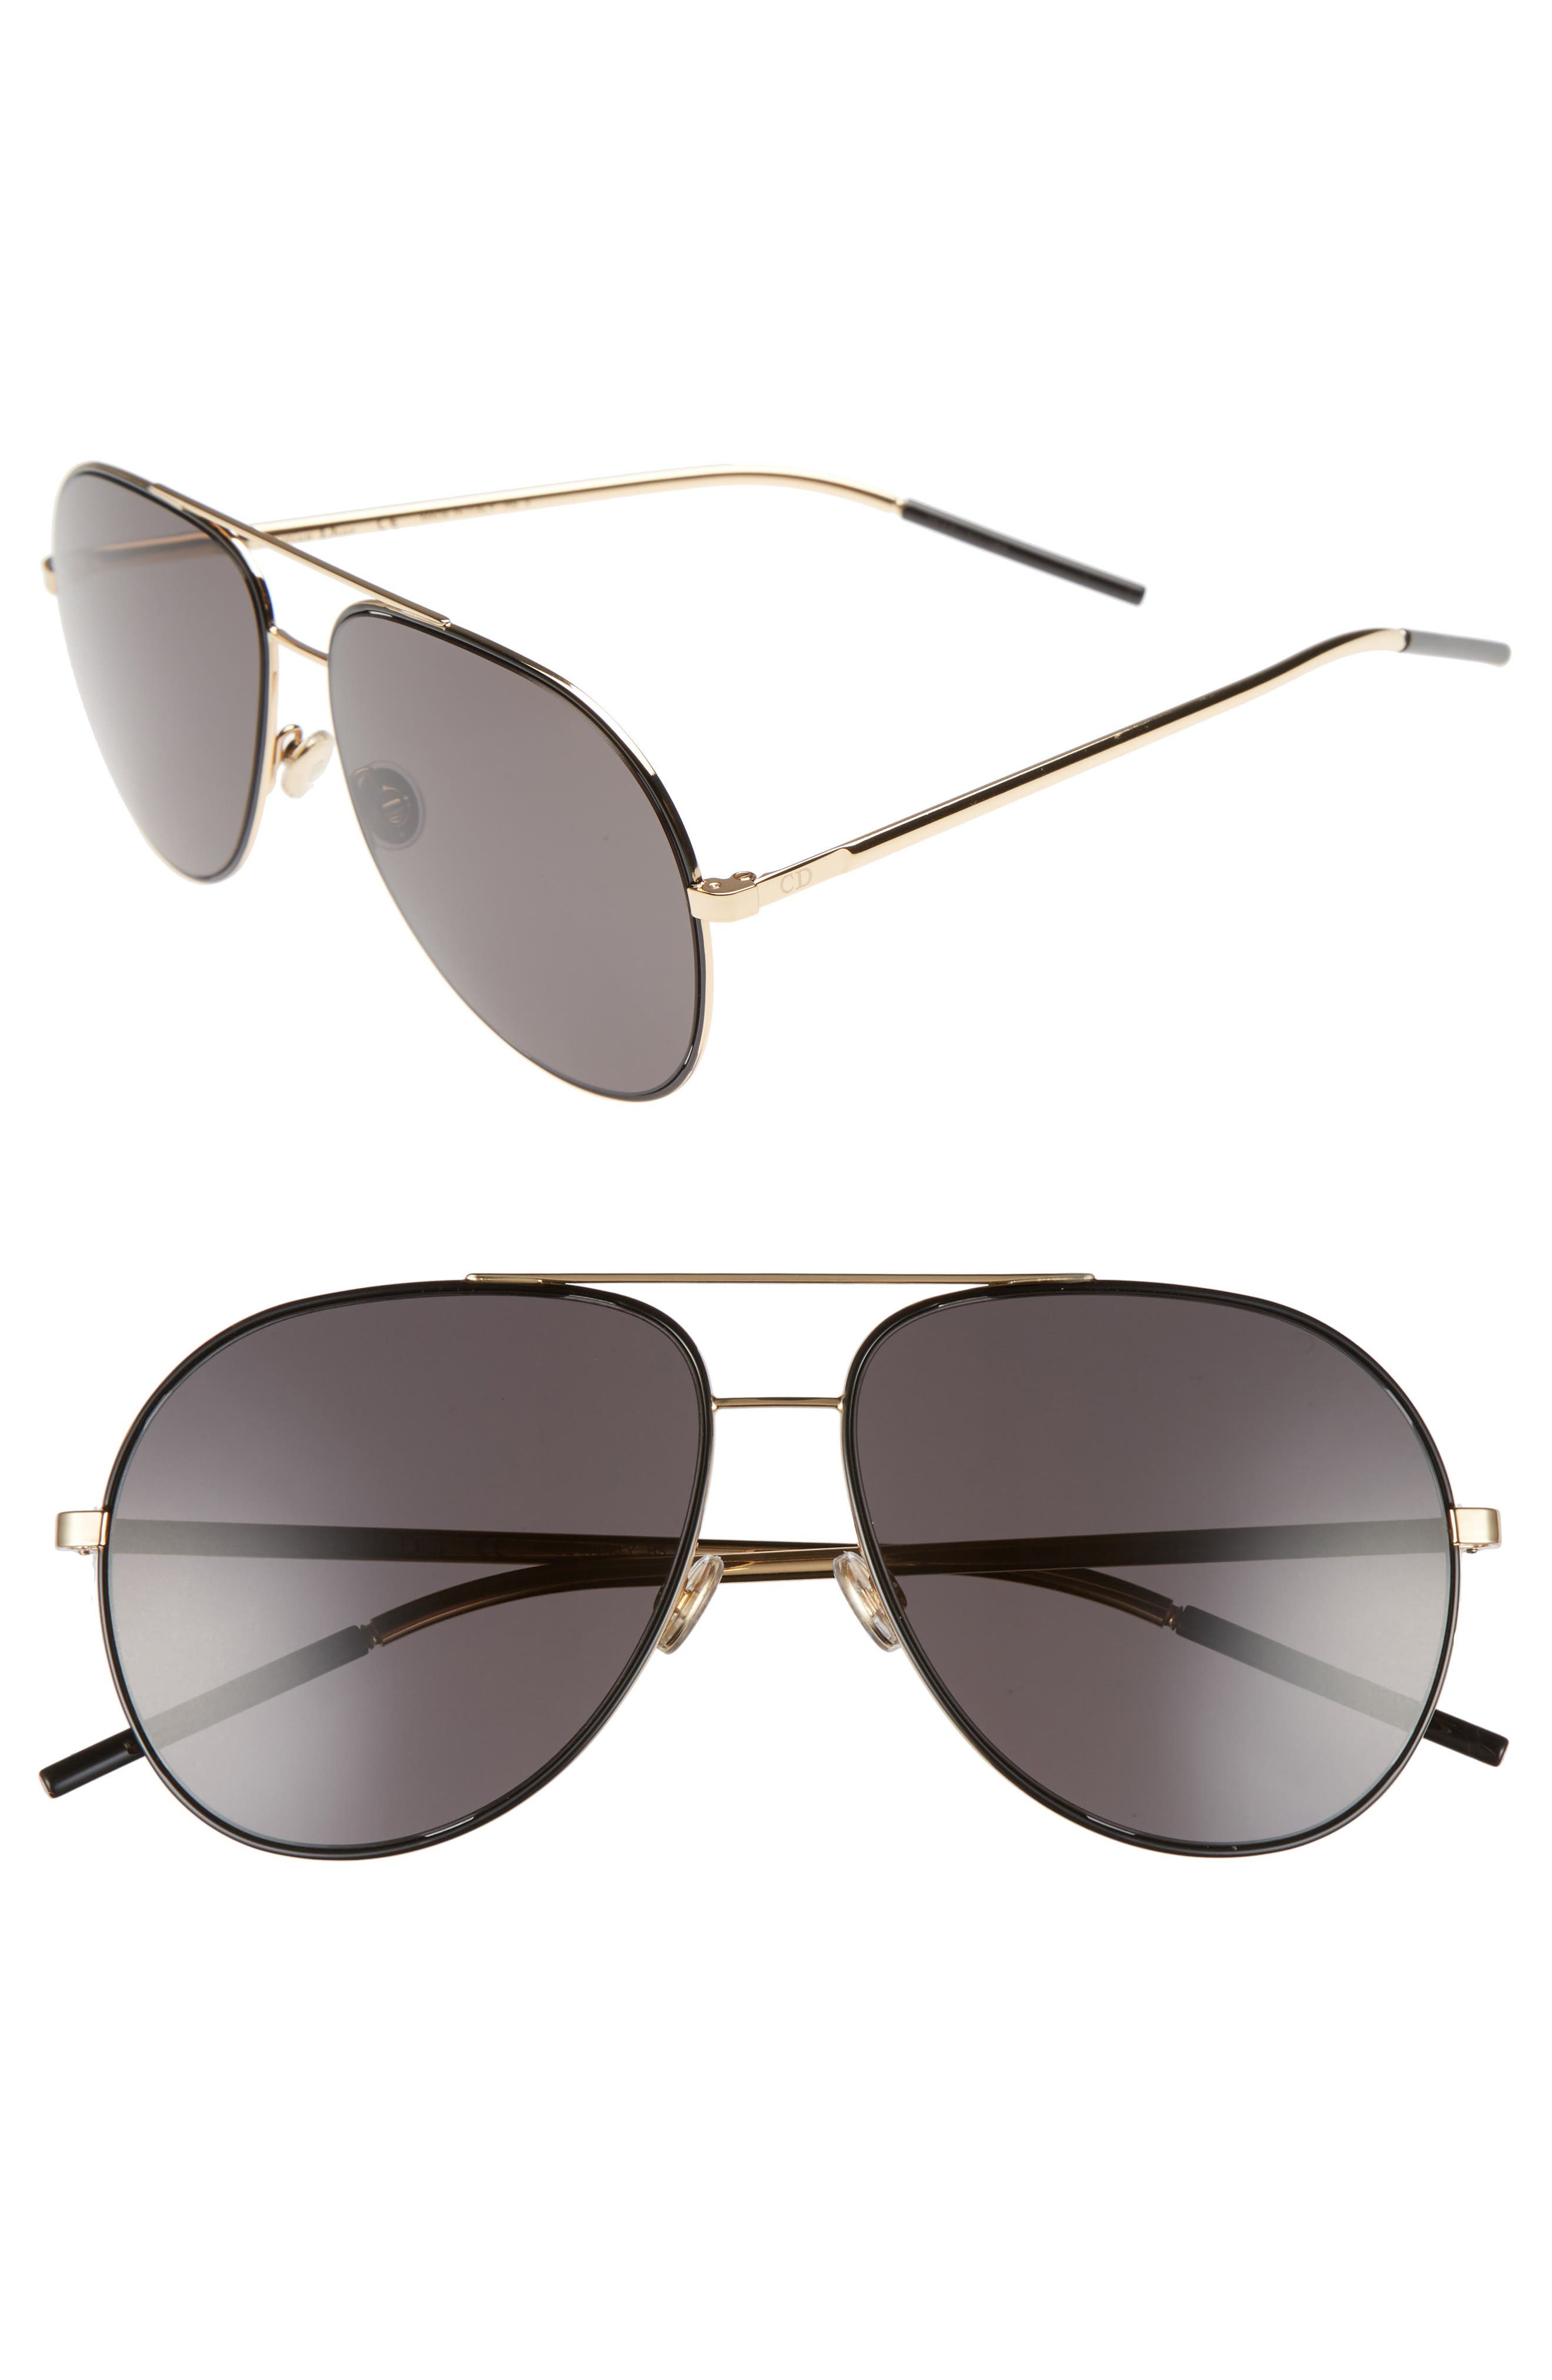 Astrals 59mm Aviator Sunglasses,                         Main,                         color, 001